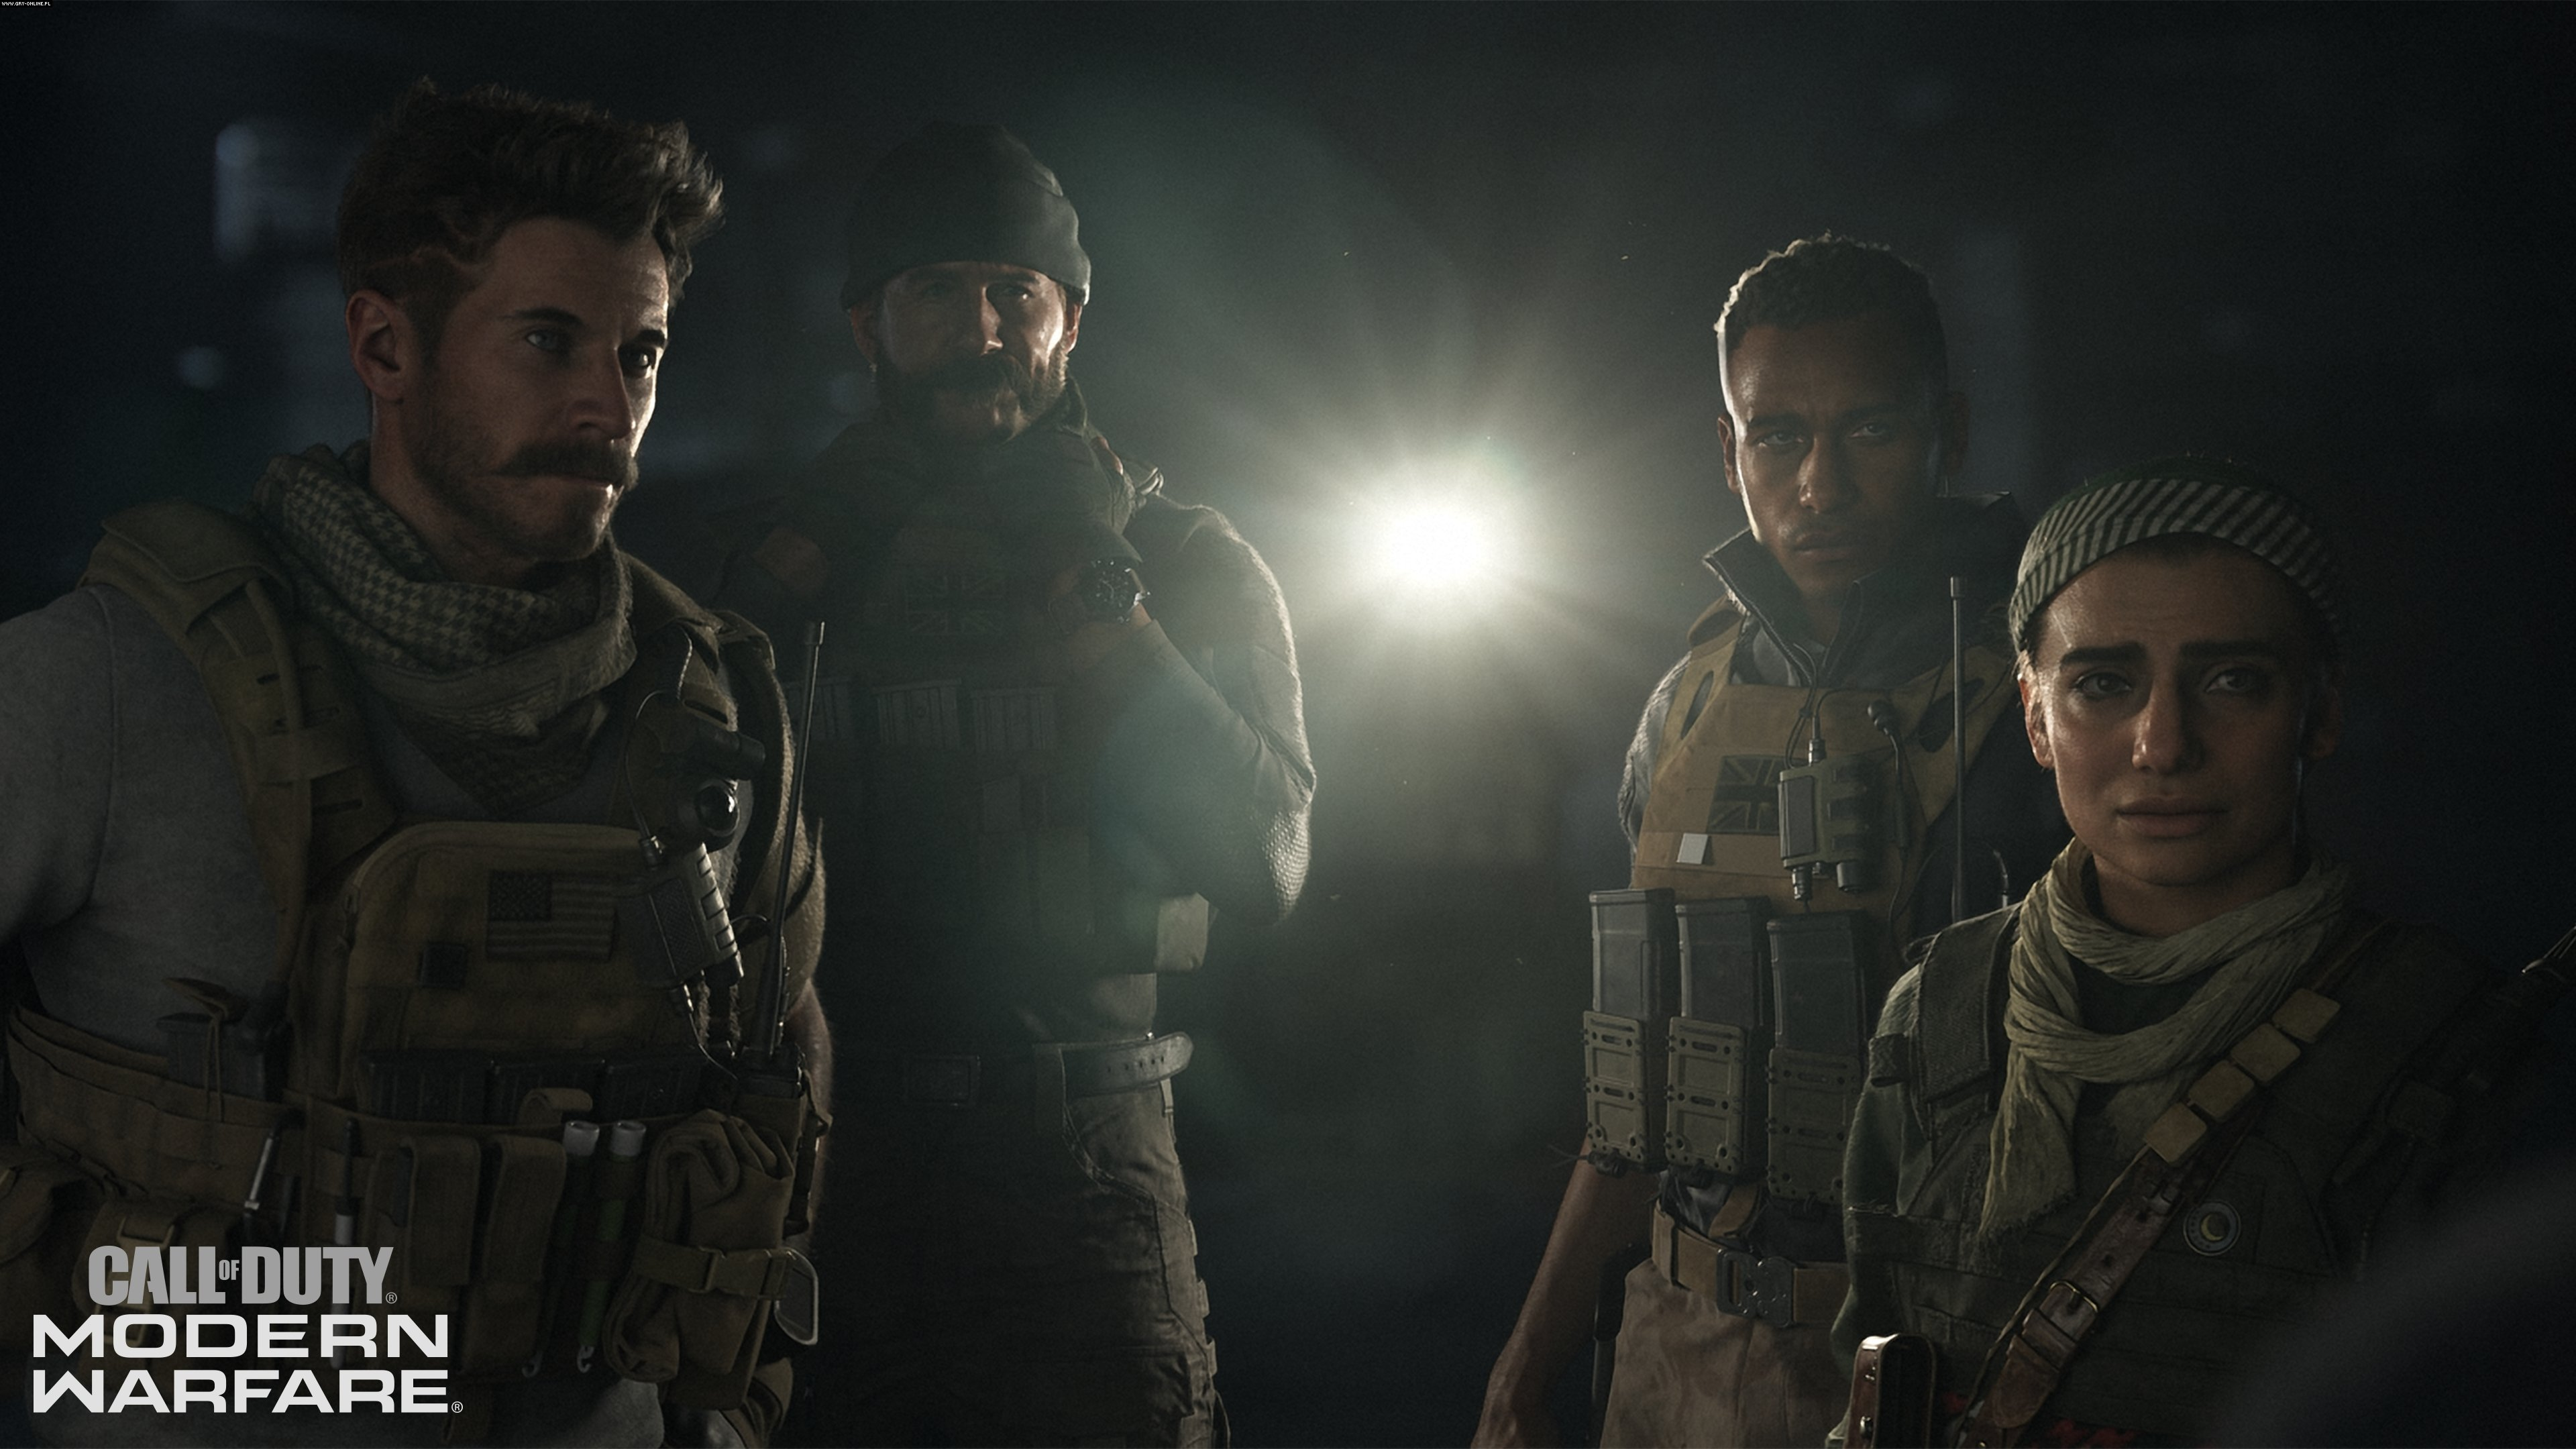 Call of Duty: Modern Warfare PC, PS4, XONE Games Image 37/65, Infinity Ward, Activision Blizzard